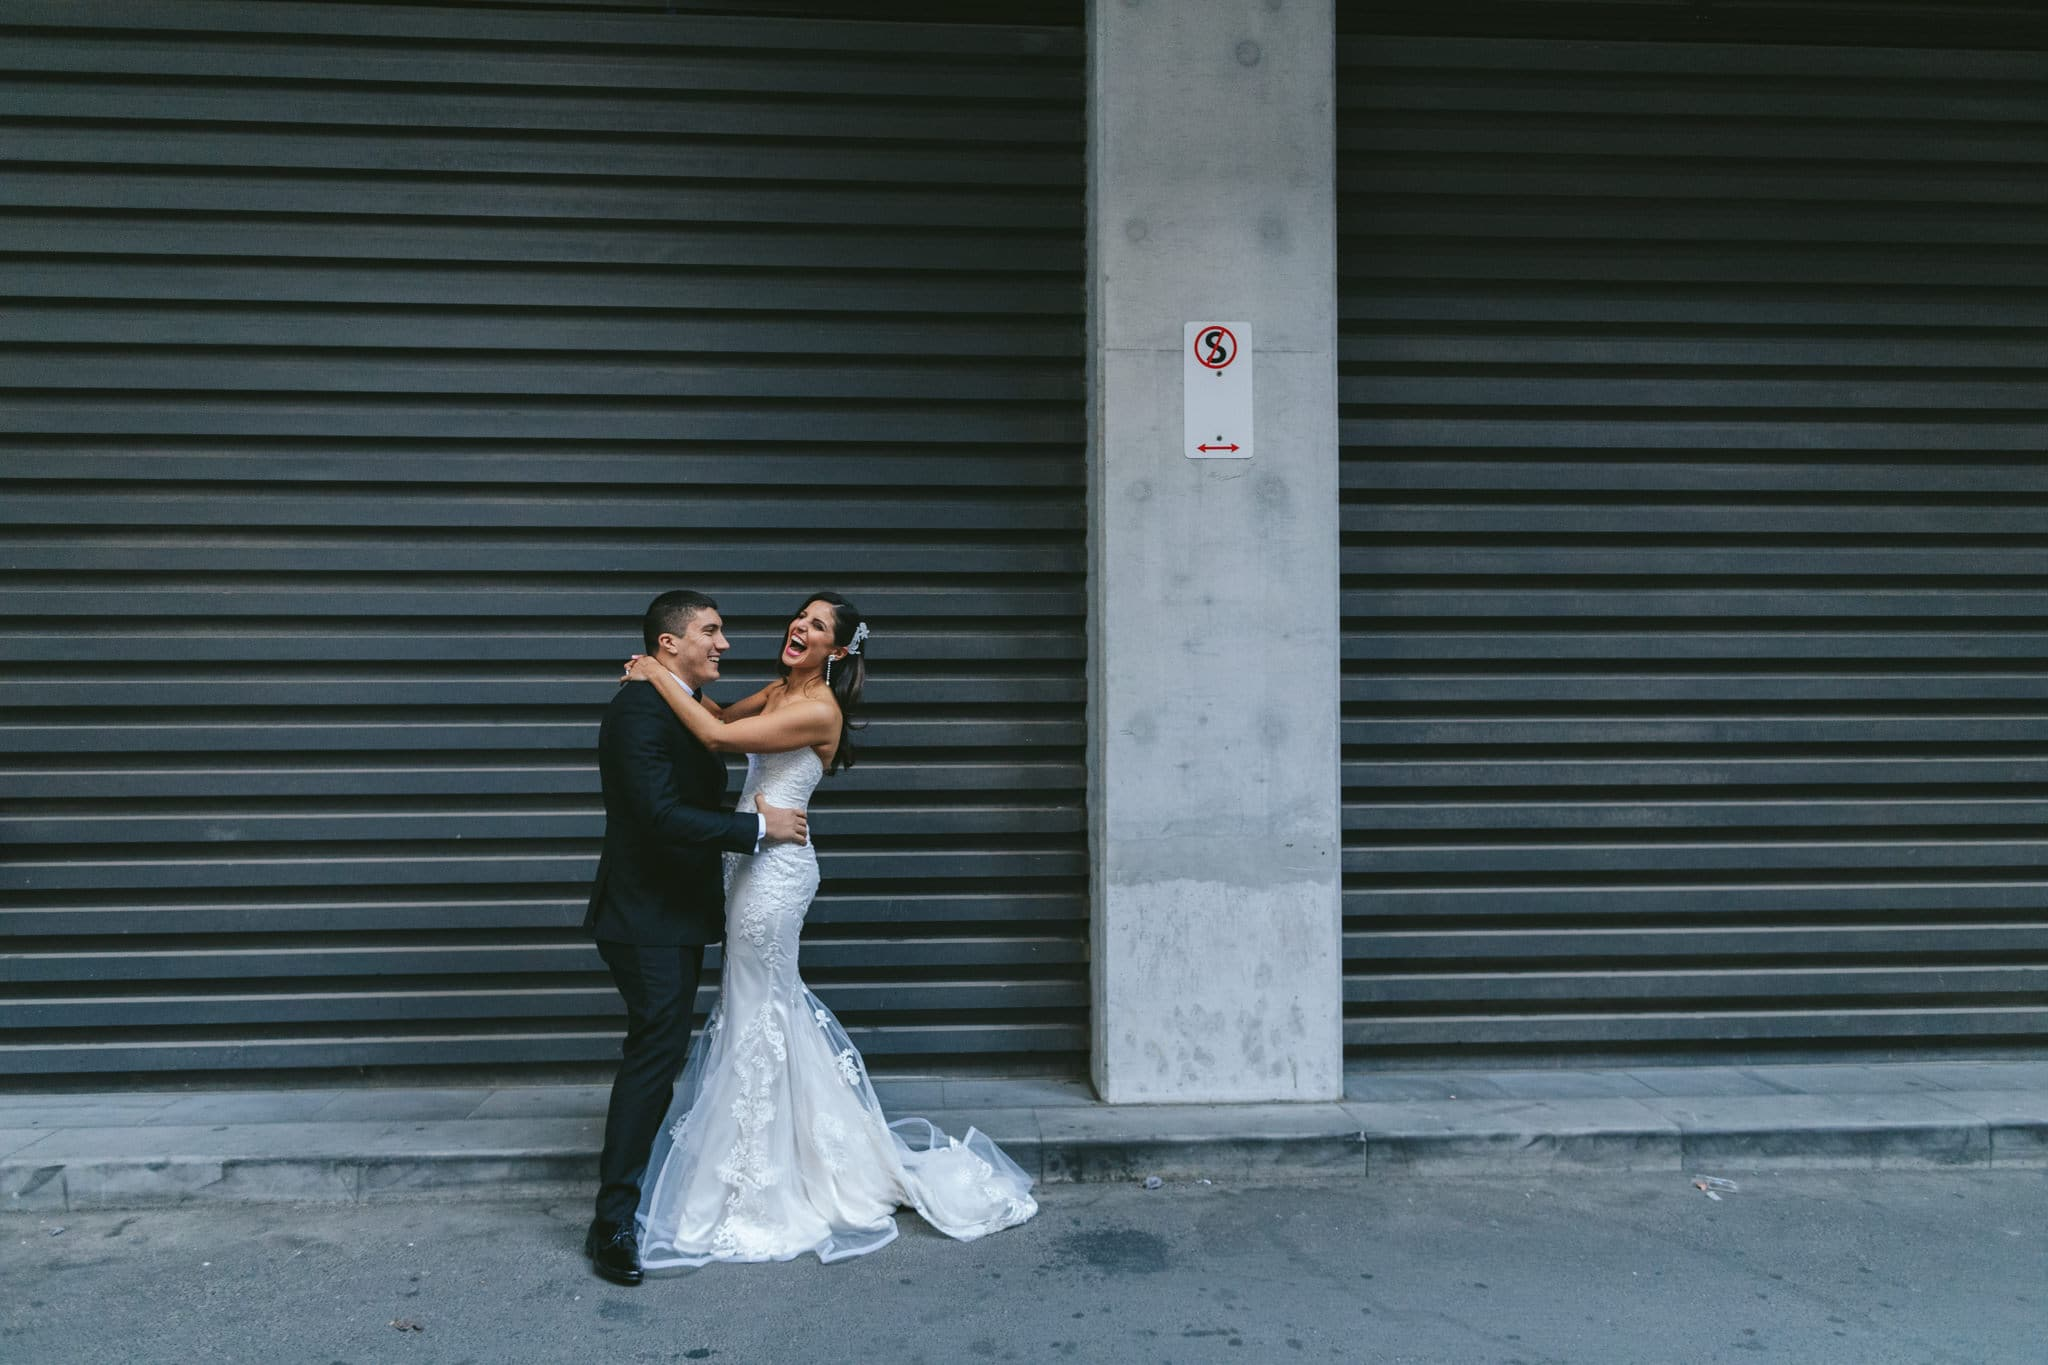 relaxed wedding photography in melbourne